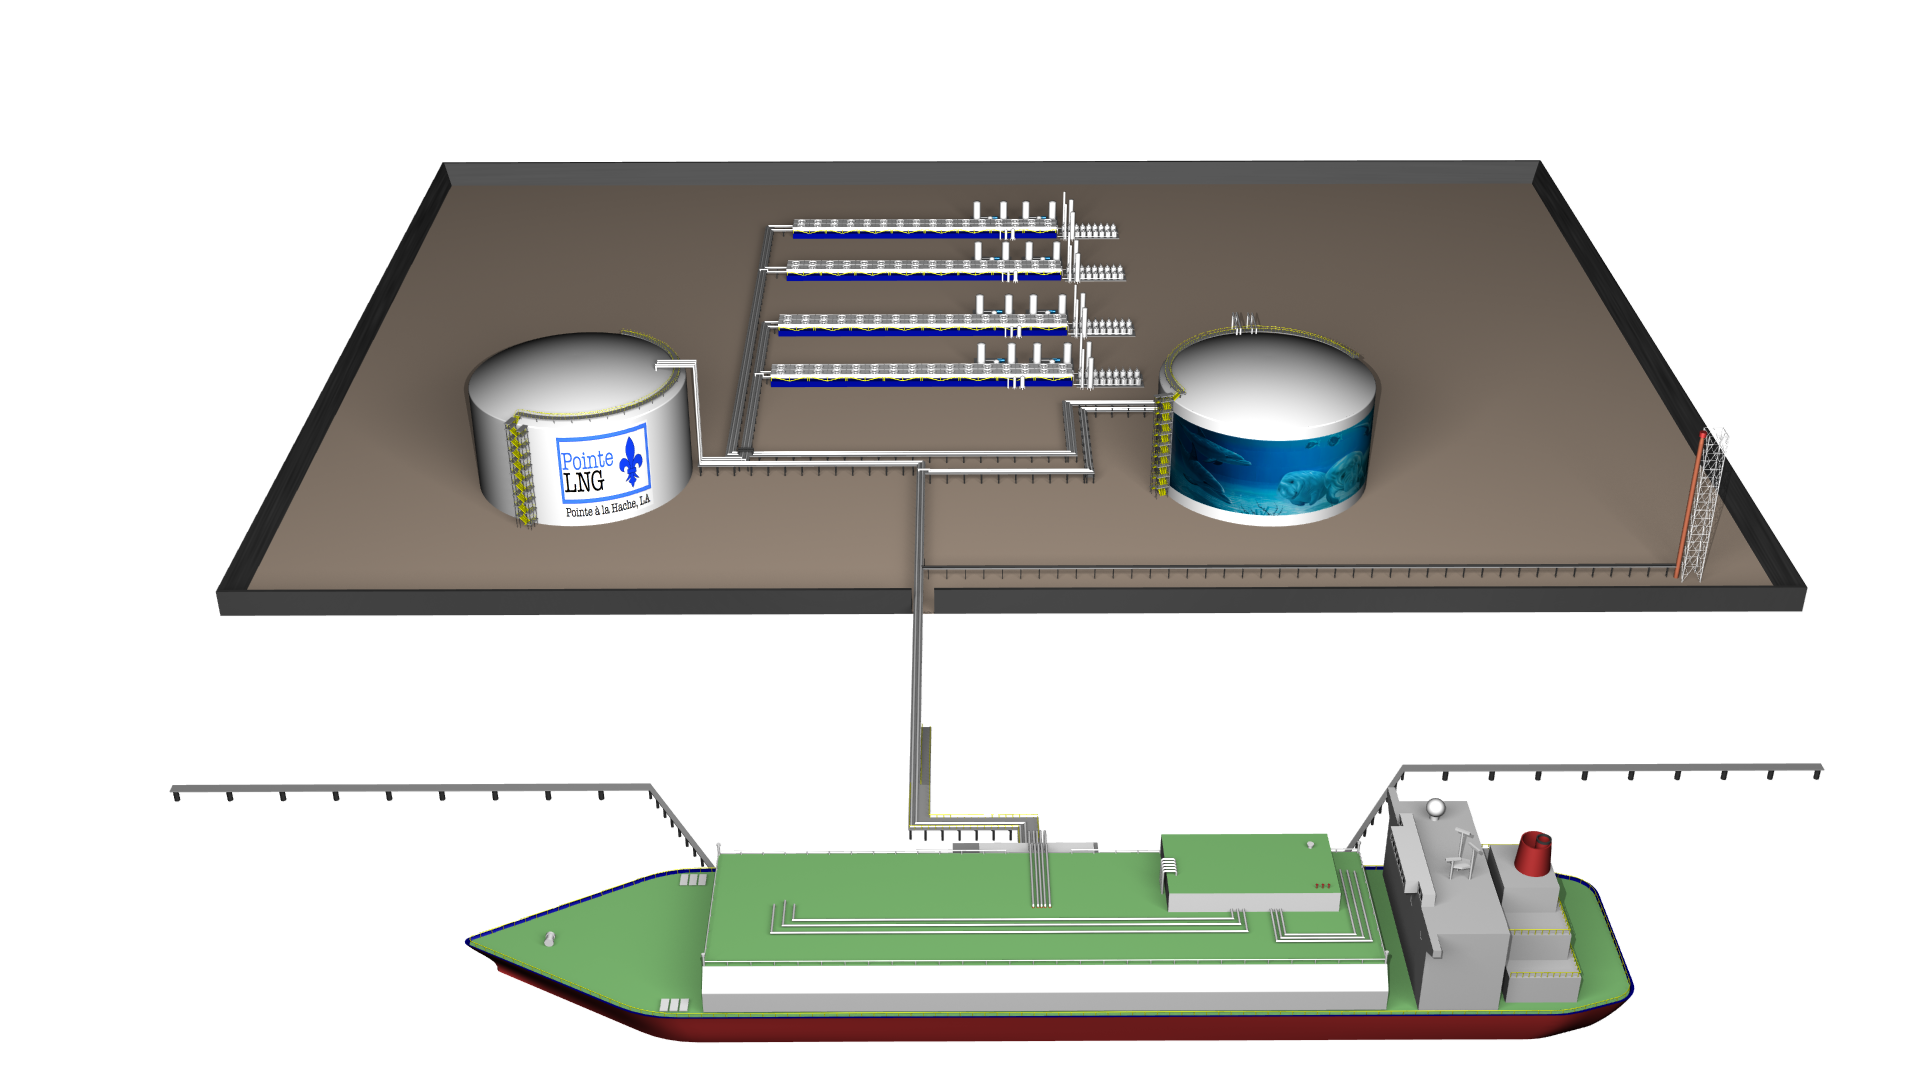 Pointe LNG Front View 2 Shore Tank.png